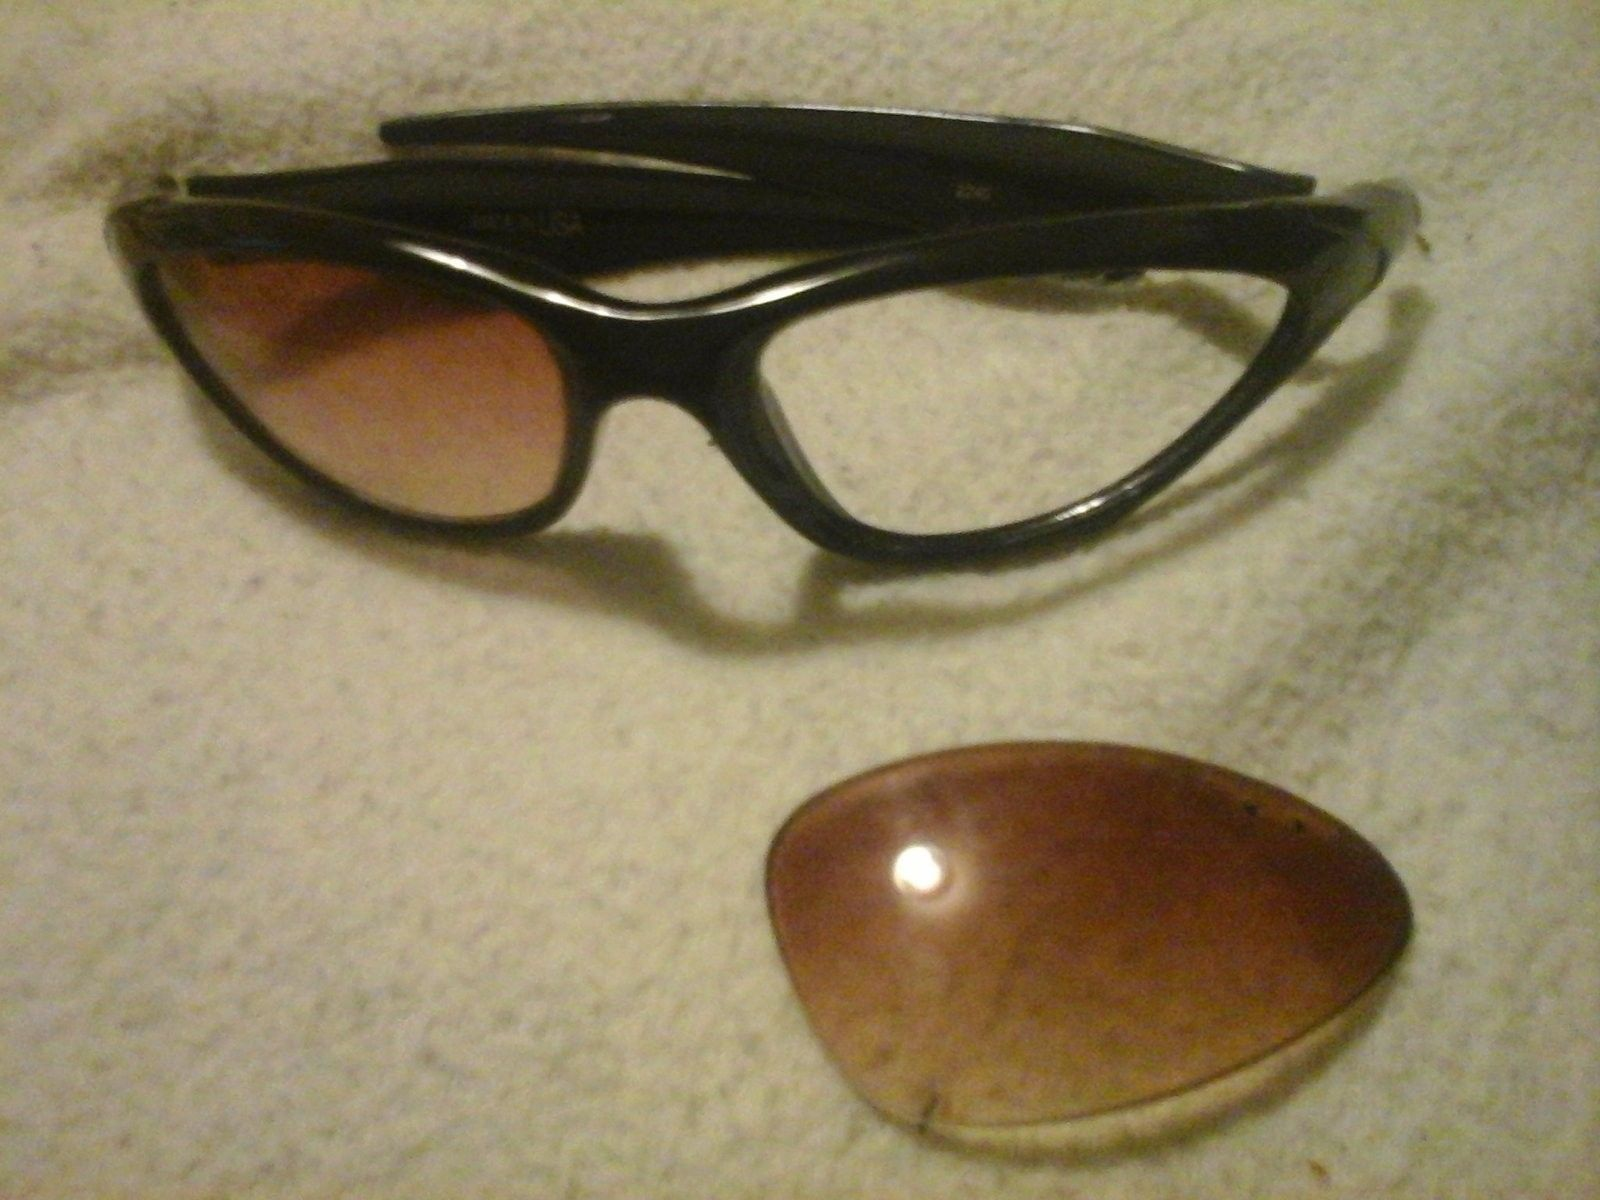 Need Help Identifying What Model Oakley Sunglasses - 1441743368288680072061.jpg